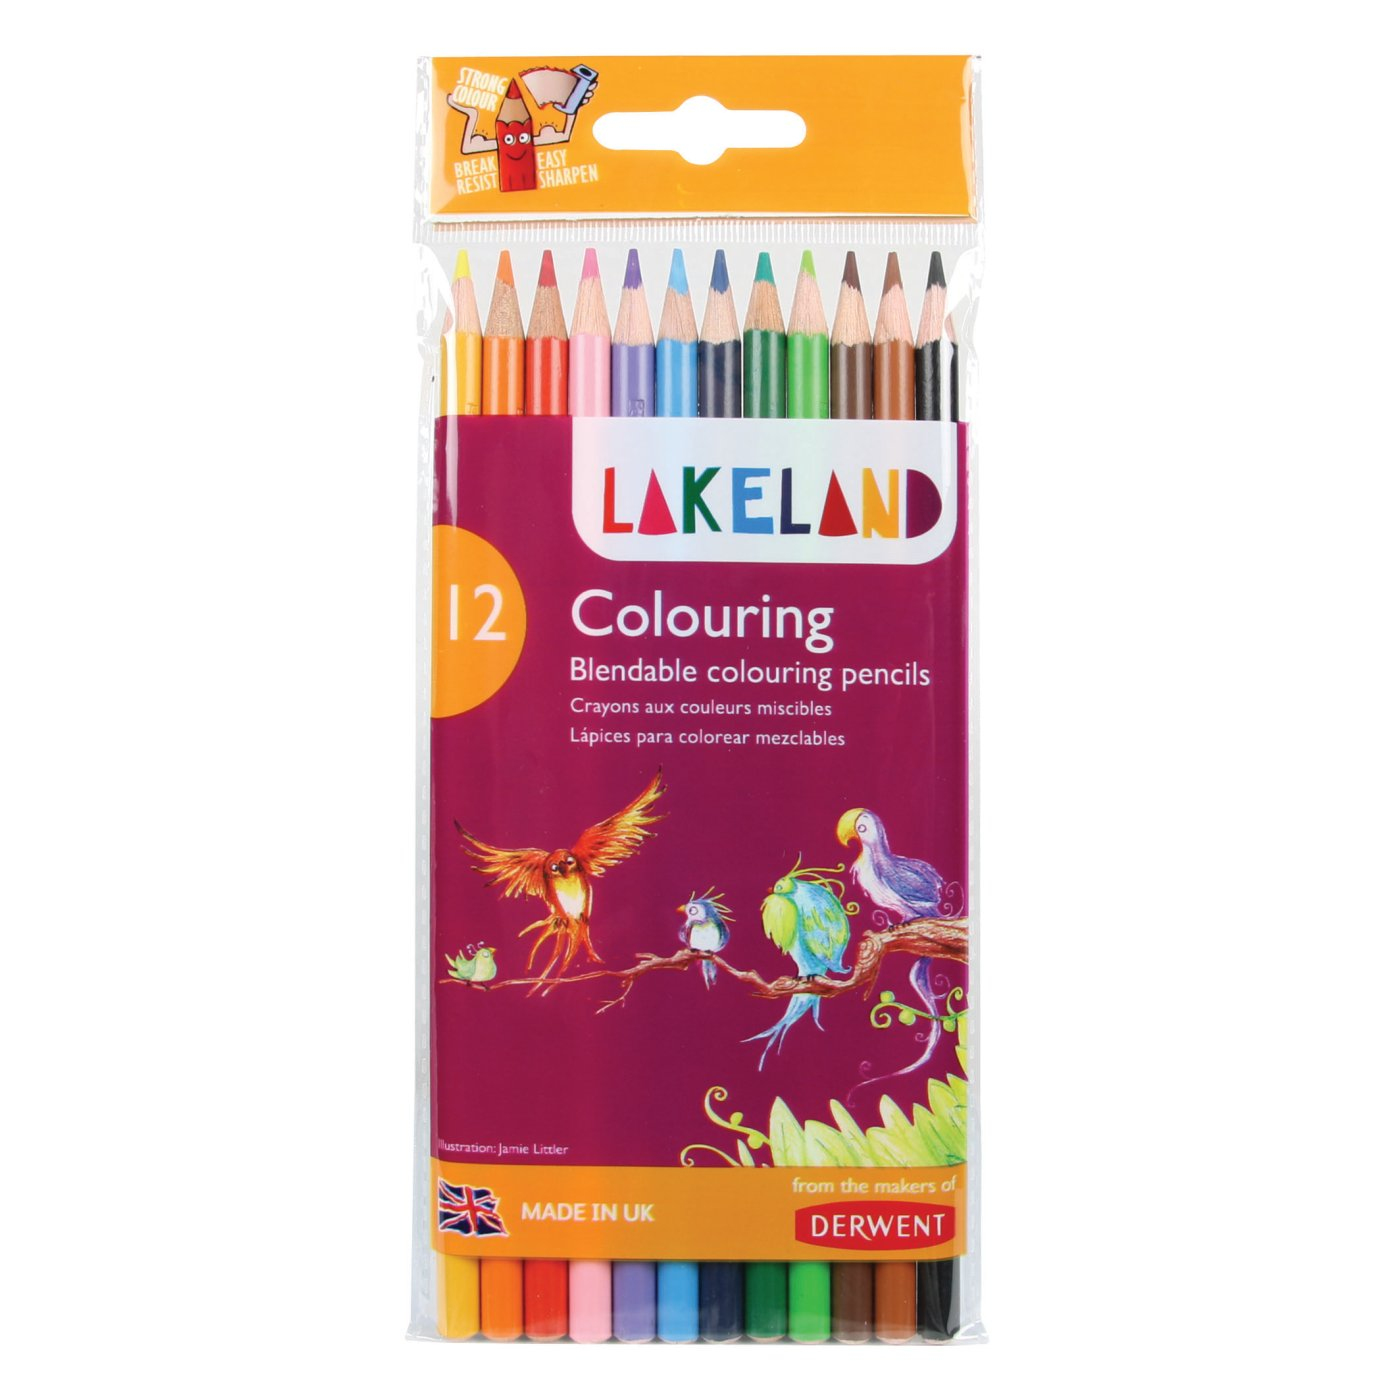 Derwent - Shop - Creative Children - Colouring - Lakeland Colouring ...